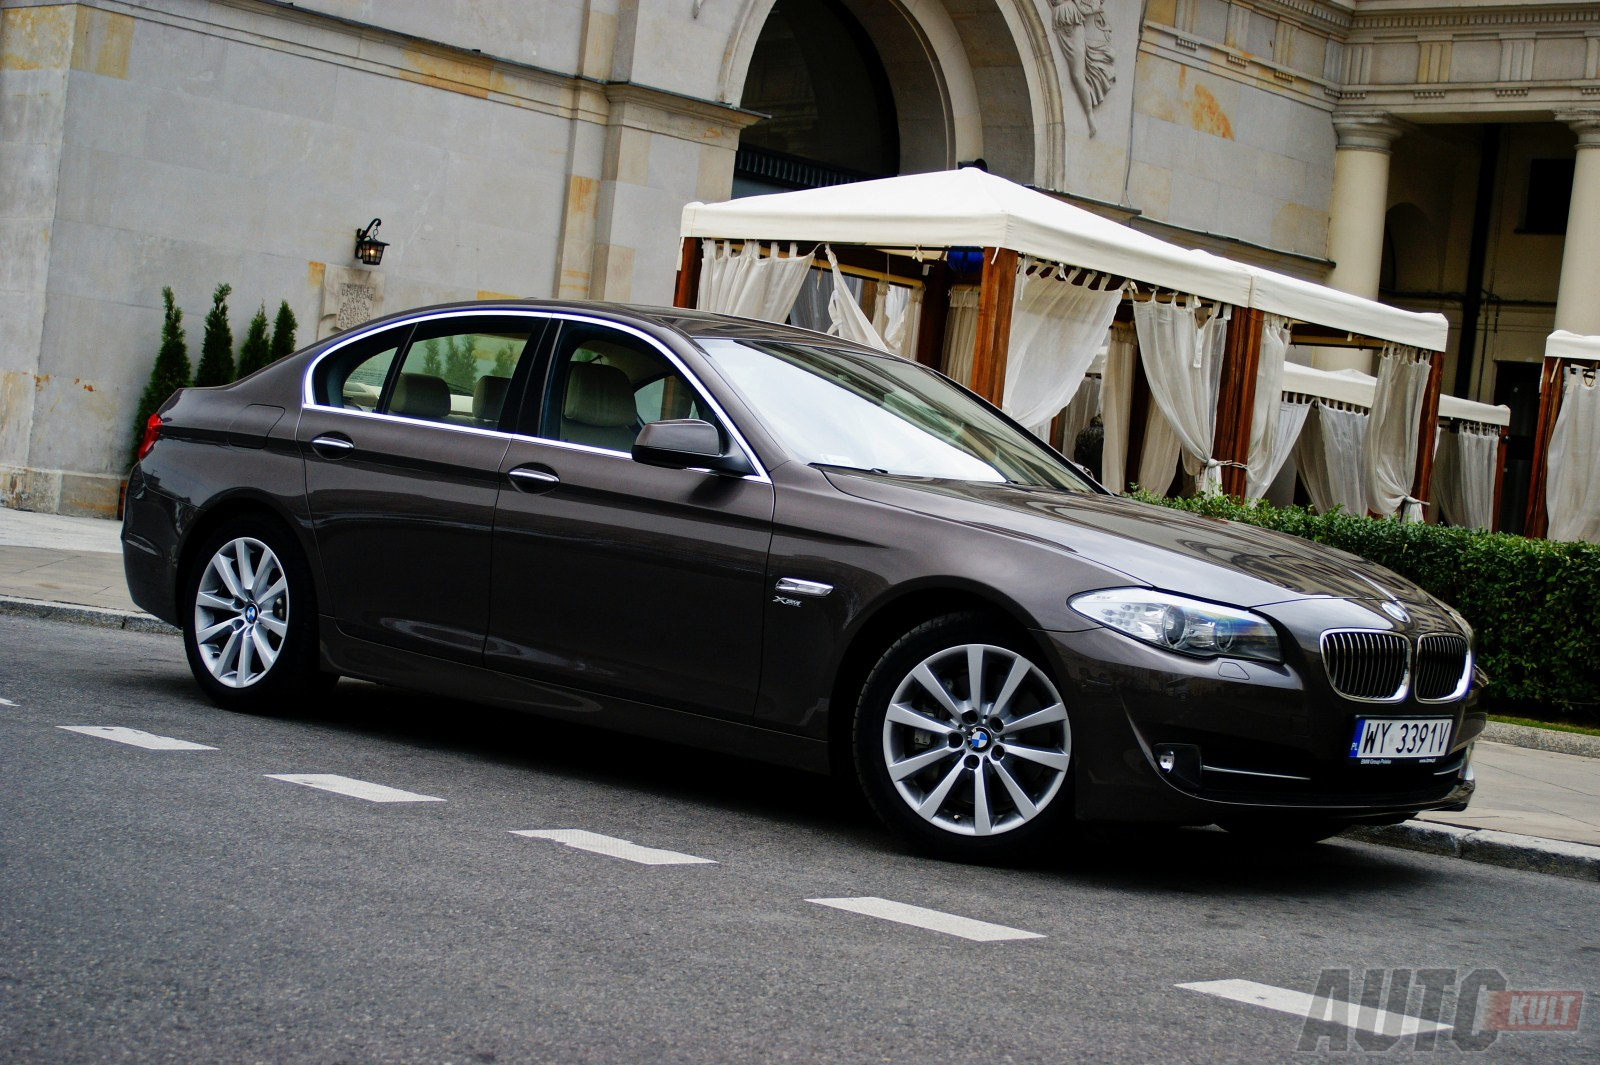 Bmw 530 2012 Review Amazing Pictures And Images Look